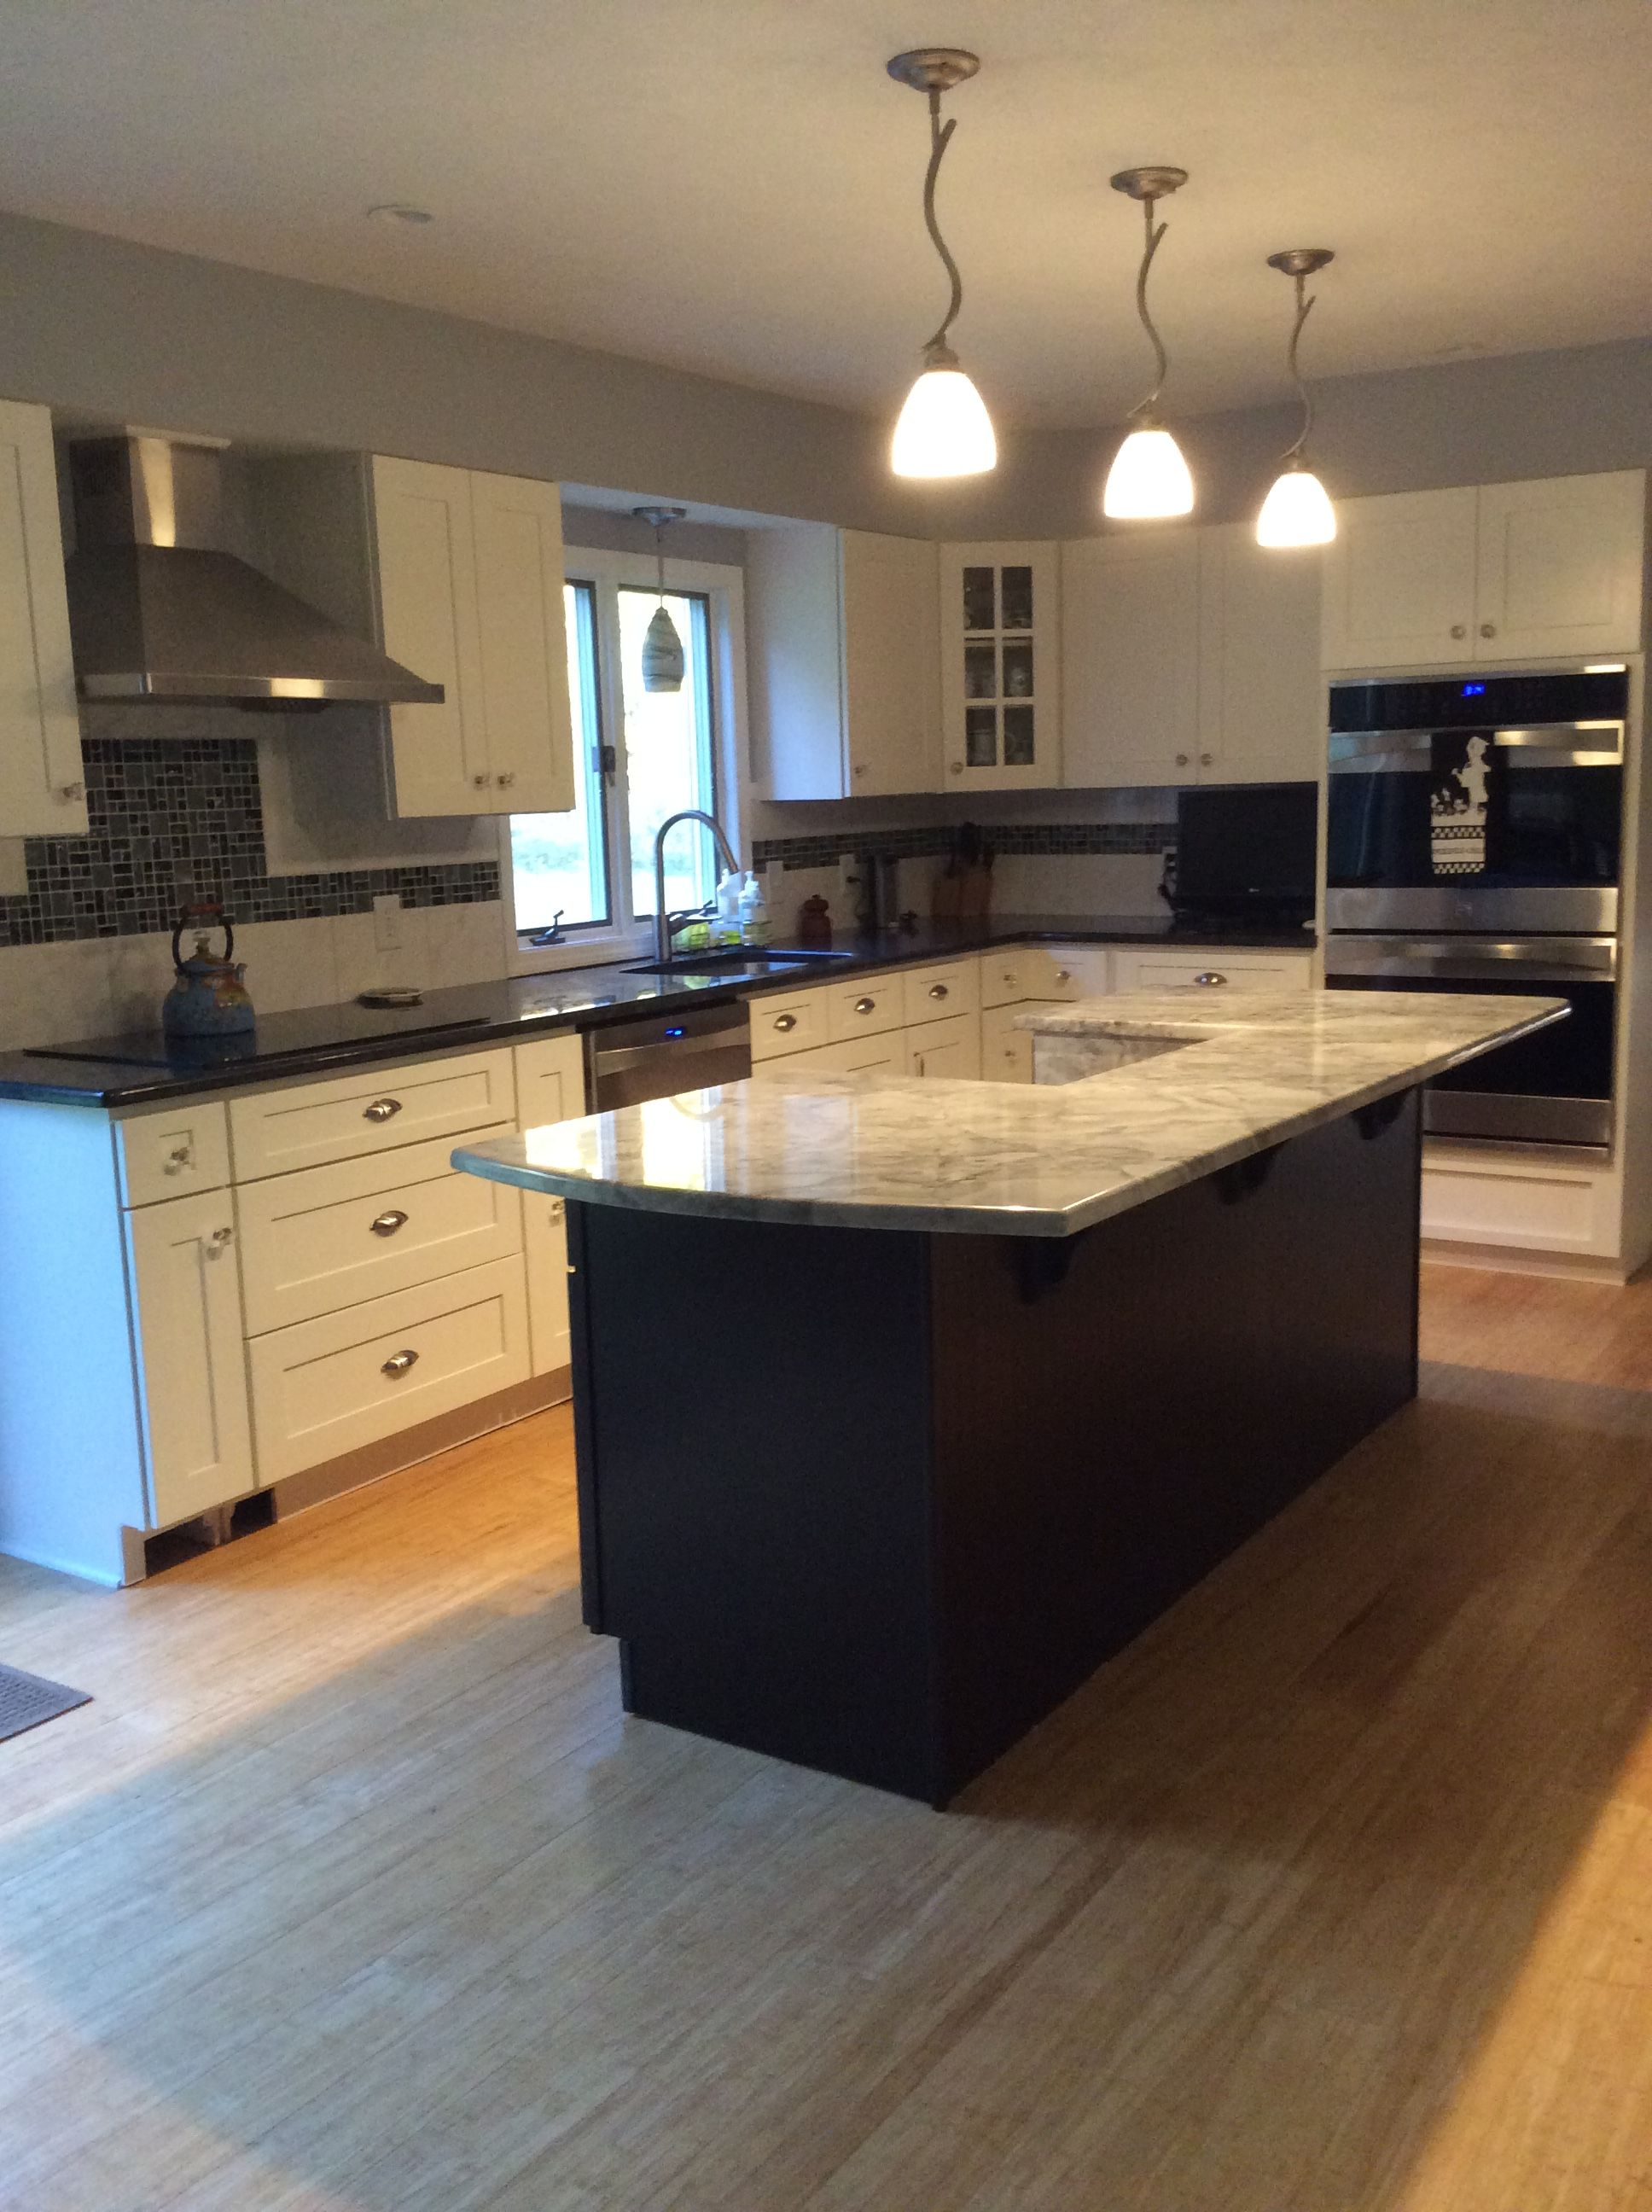 Worked With Manager Bruce Berean To Design Layout Of Kitchen Cabinets On The Perimeter Of The Kitchen Using Whi Espresso Kitchen Cabinets Kitchen Plans Kitchen